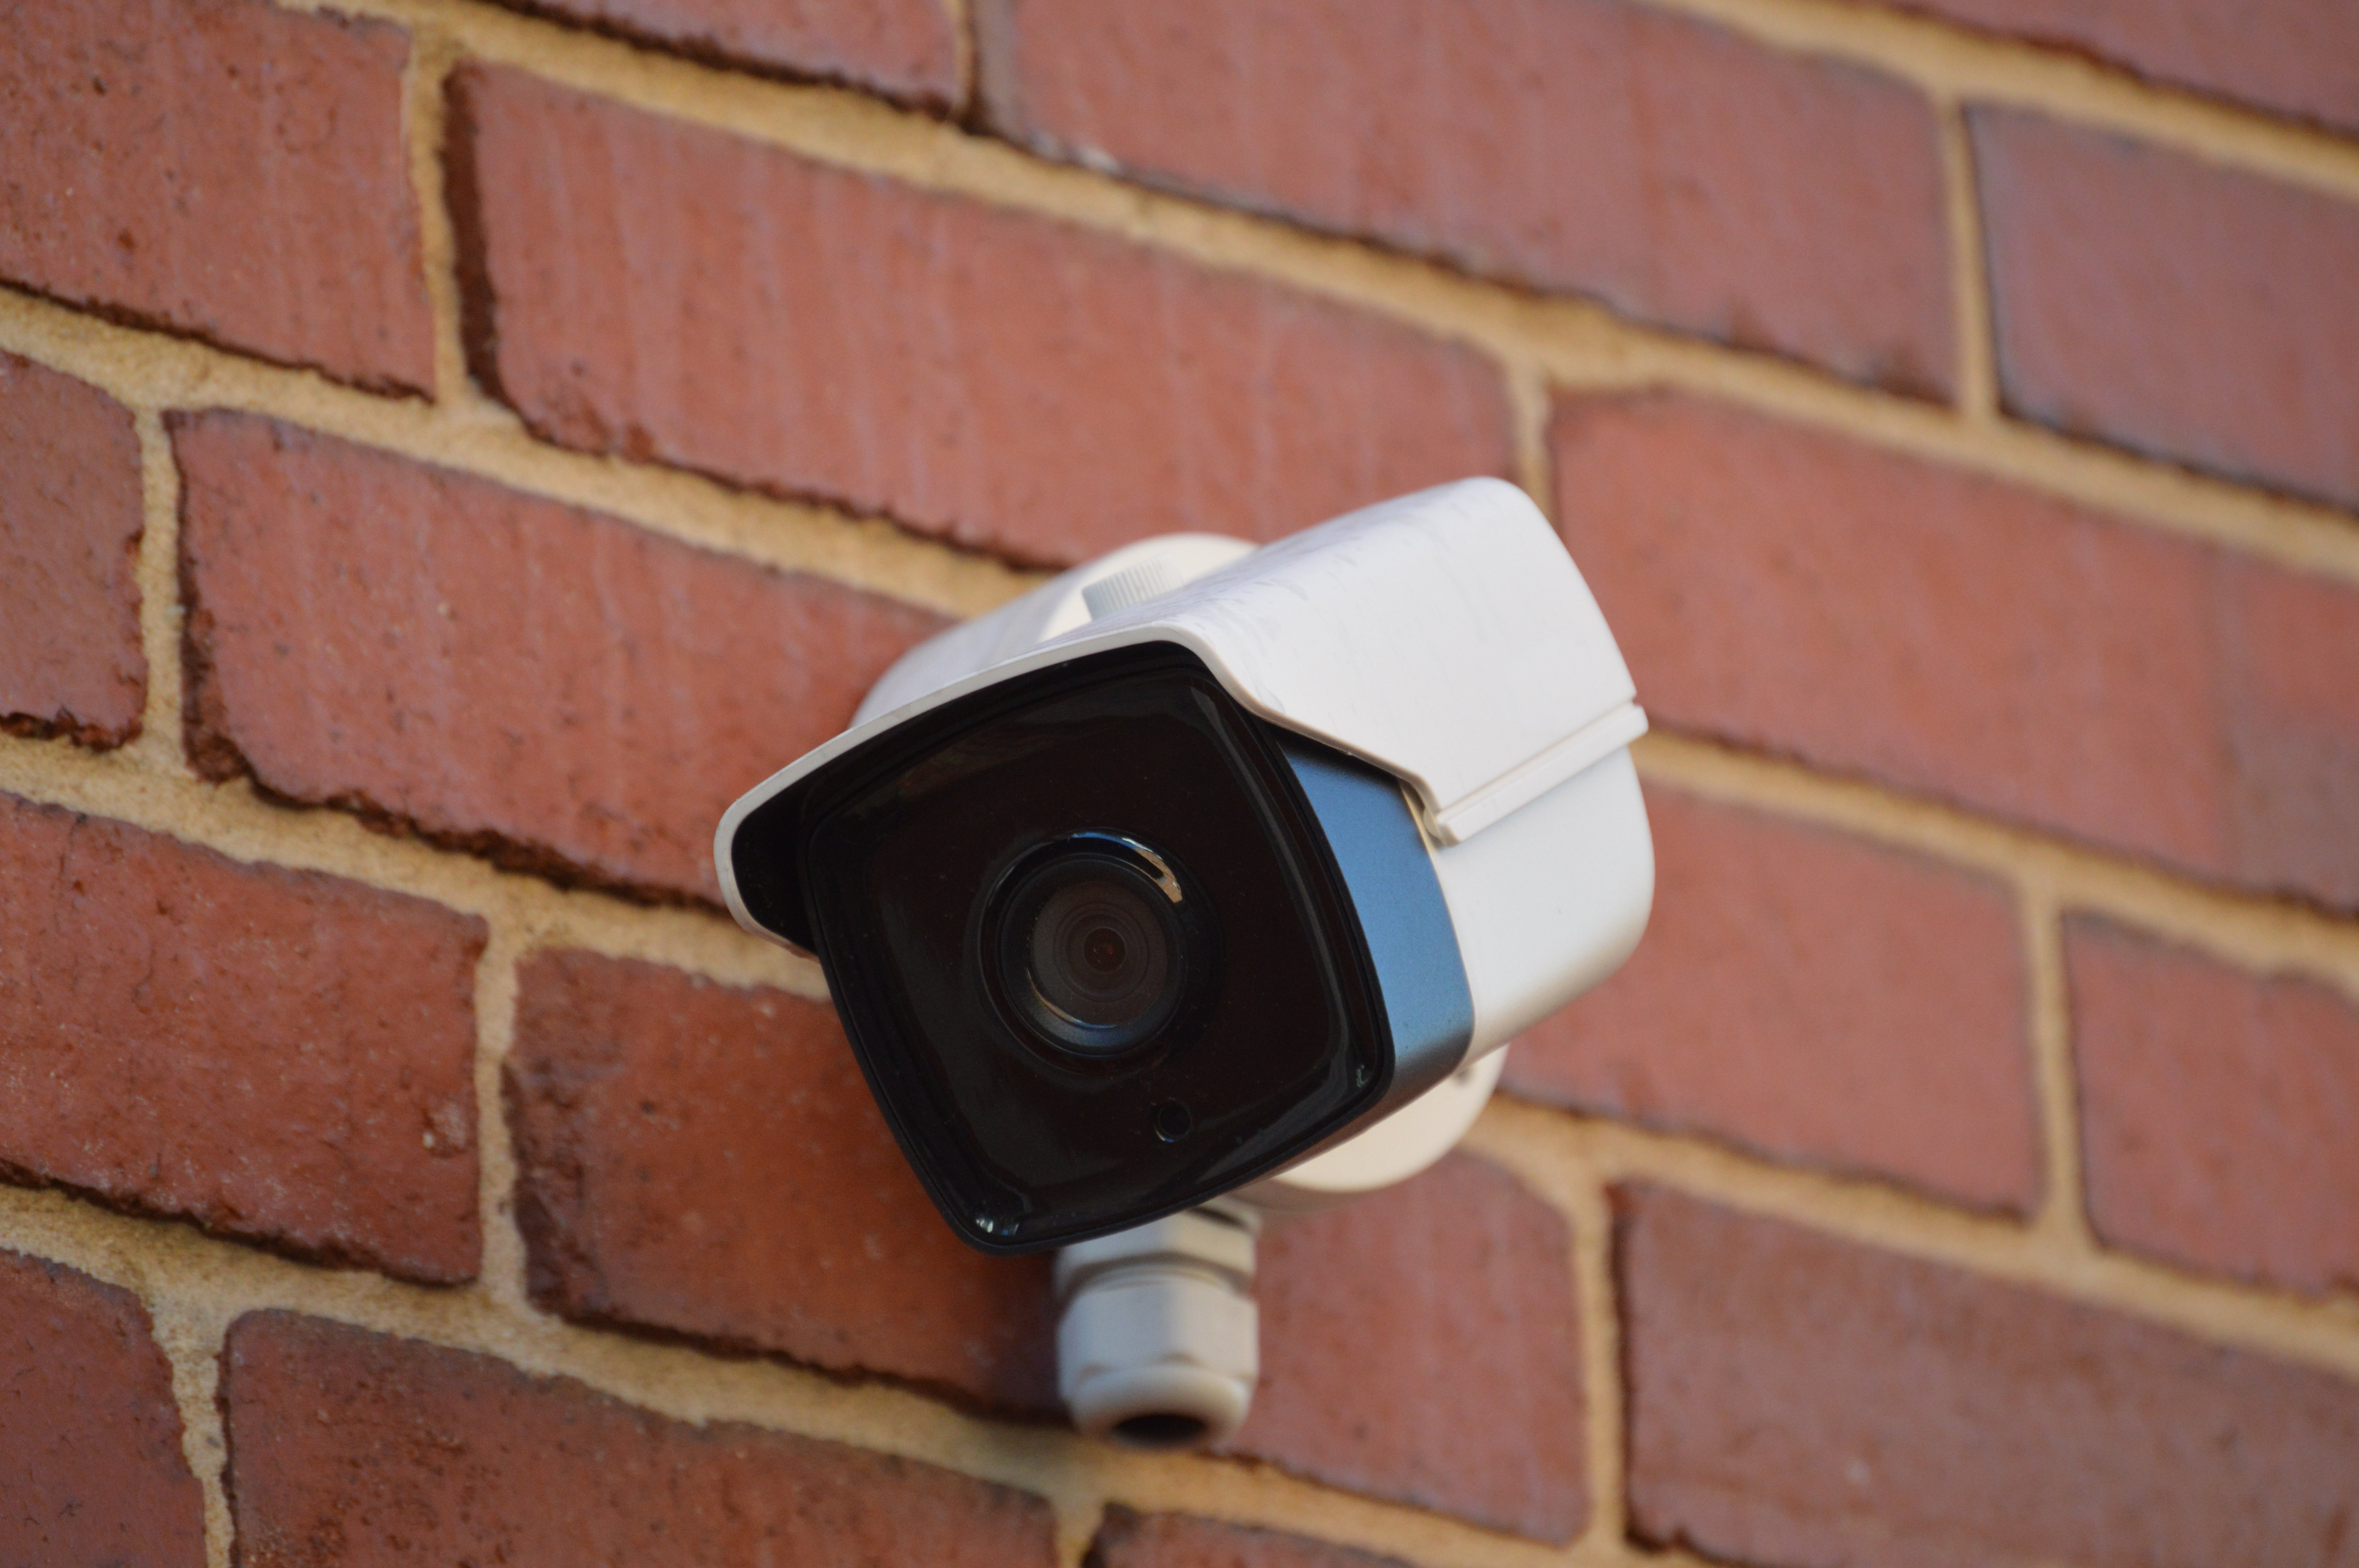 Electricians in AA County for Security Camera Install